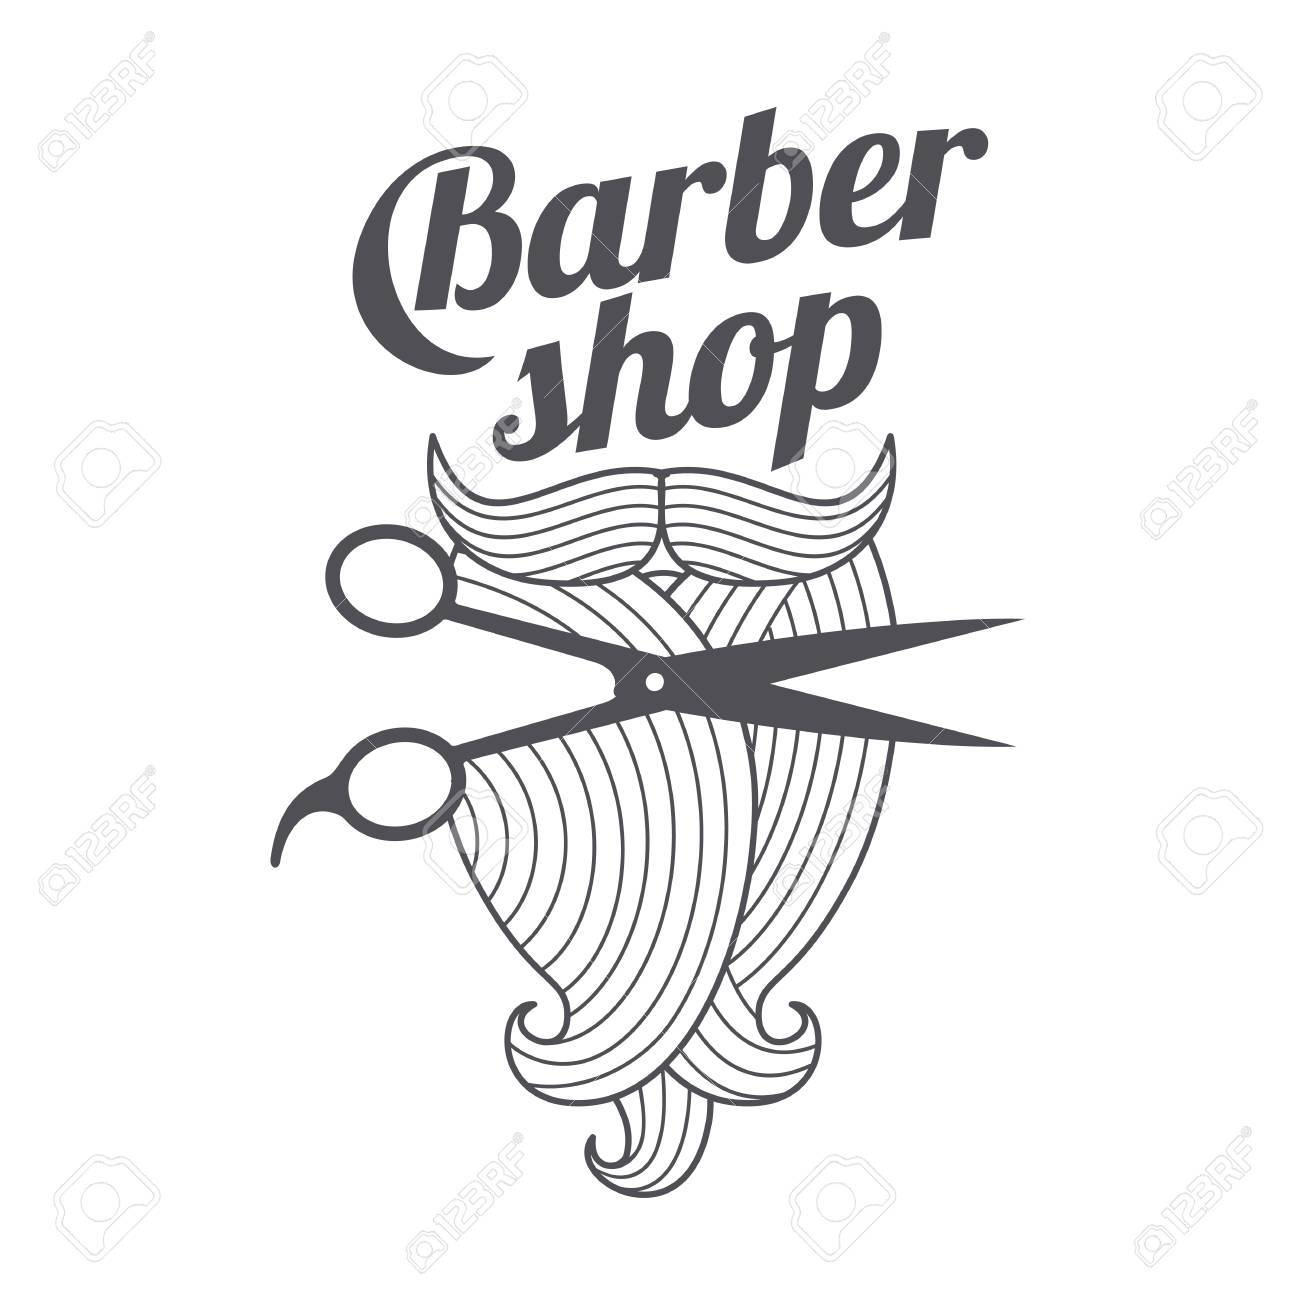 432f2665b83 Barber shop logo templates. Hair, beard, razor, scissors, comb. Vintage